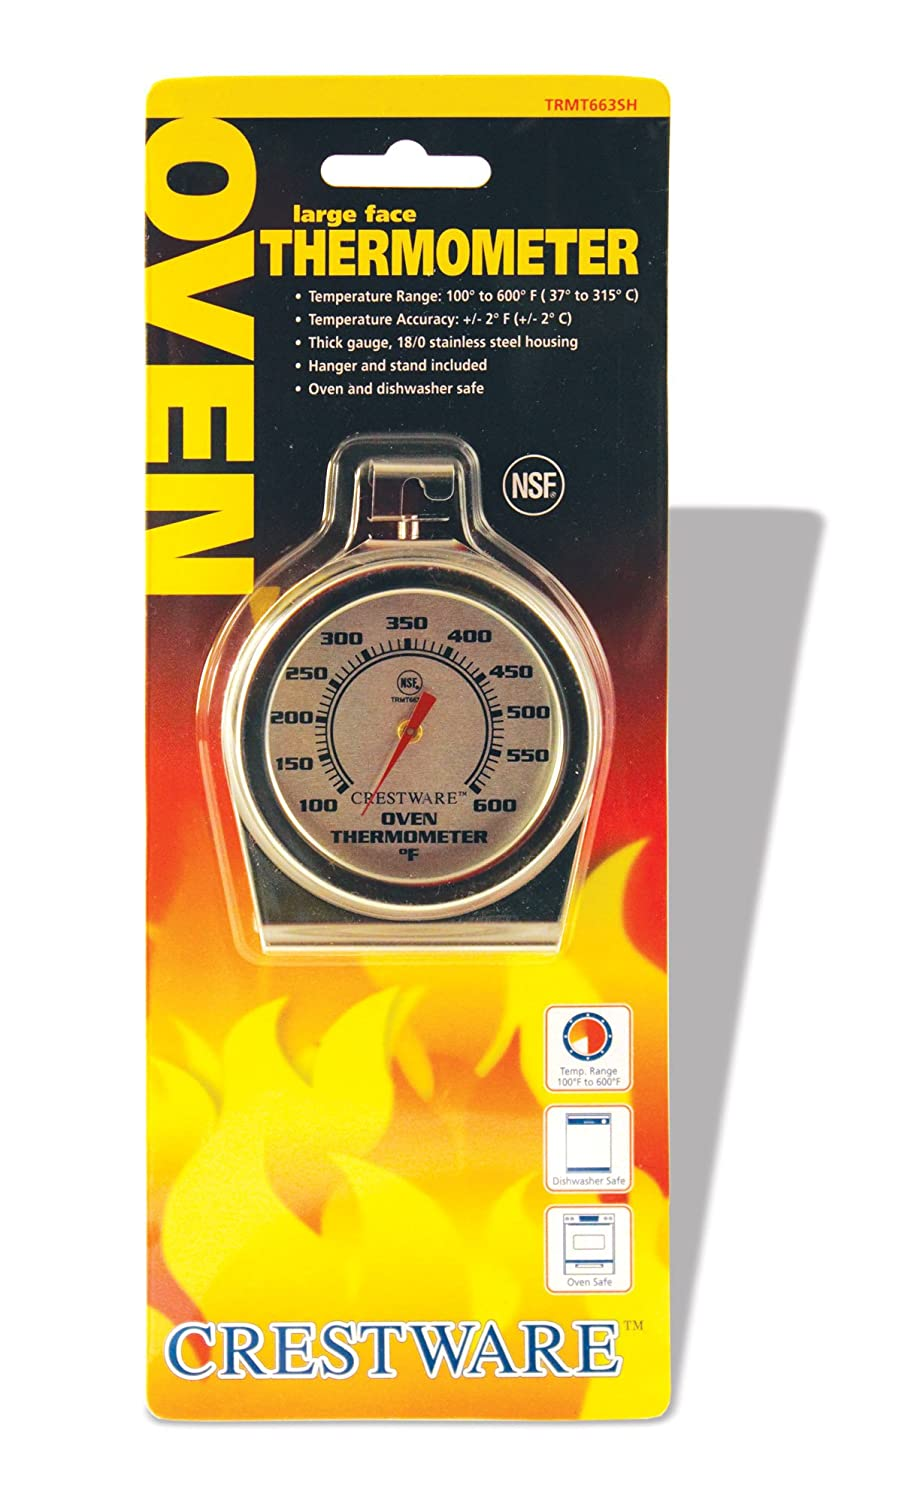 Crestware Oven Thermometer Large Face Crestware Commercial Kitchen TRMT663SH